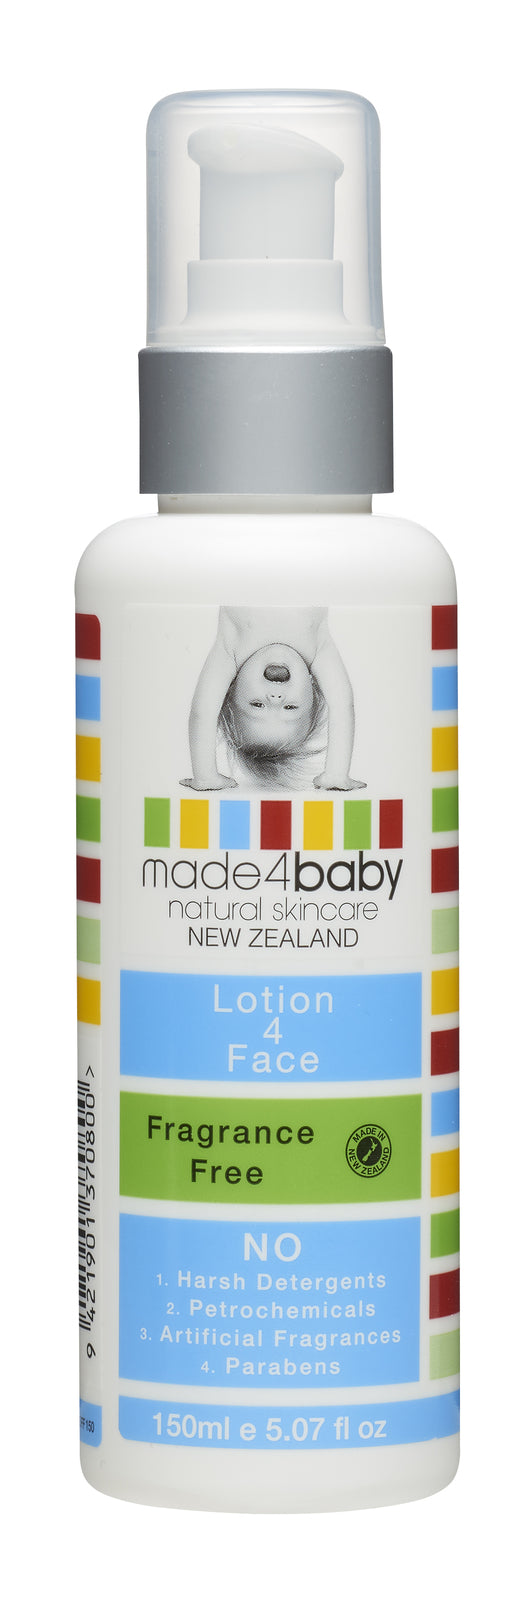 Made4Baby: Lotion 4 Face - Fragrance Free (150ml)